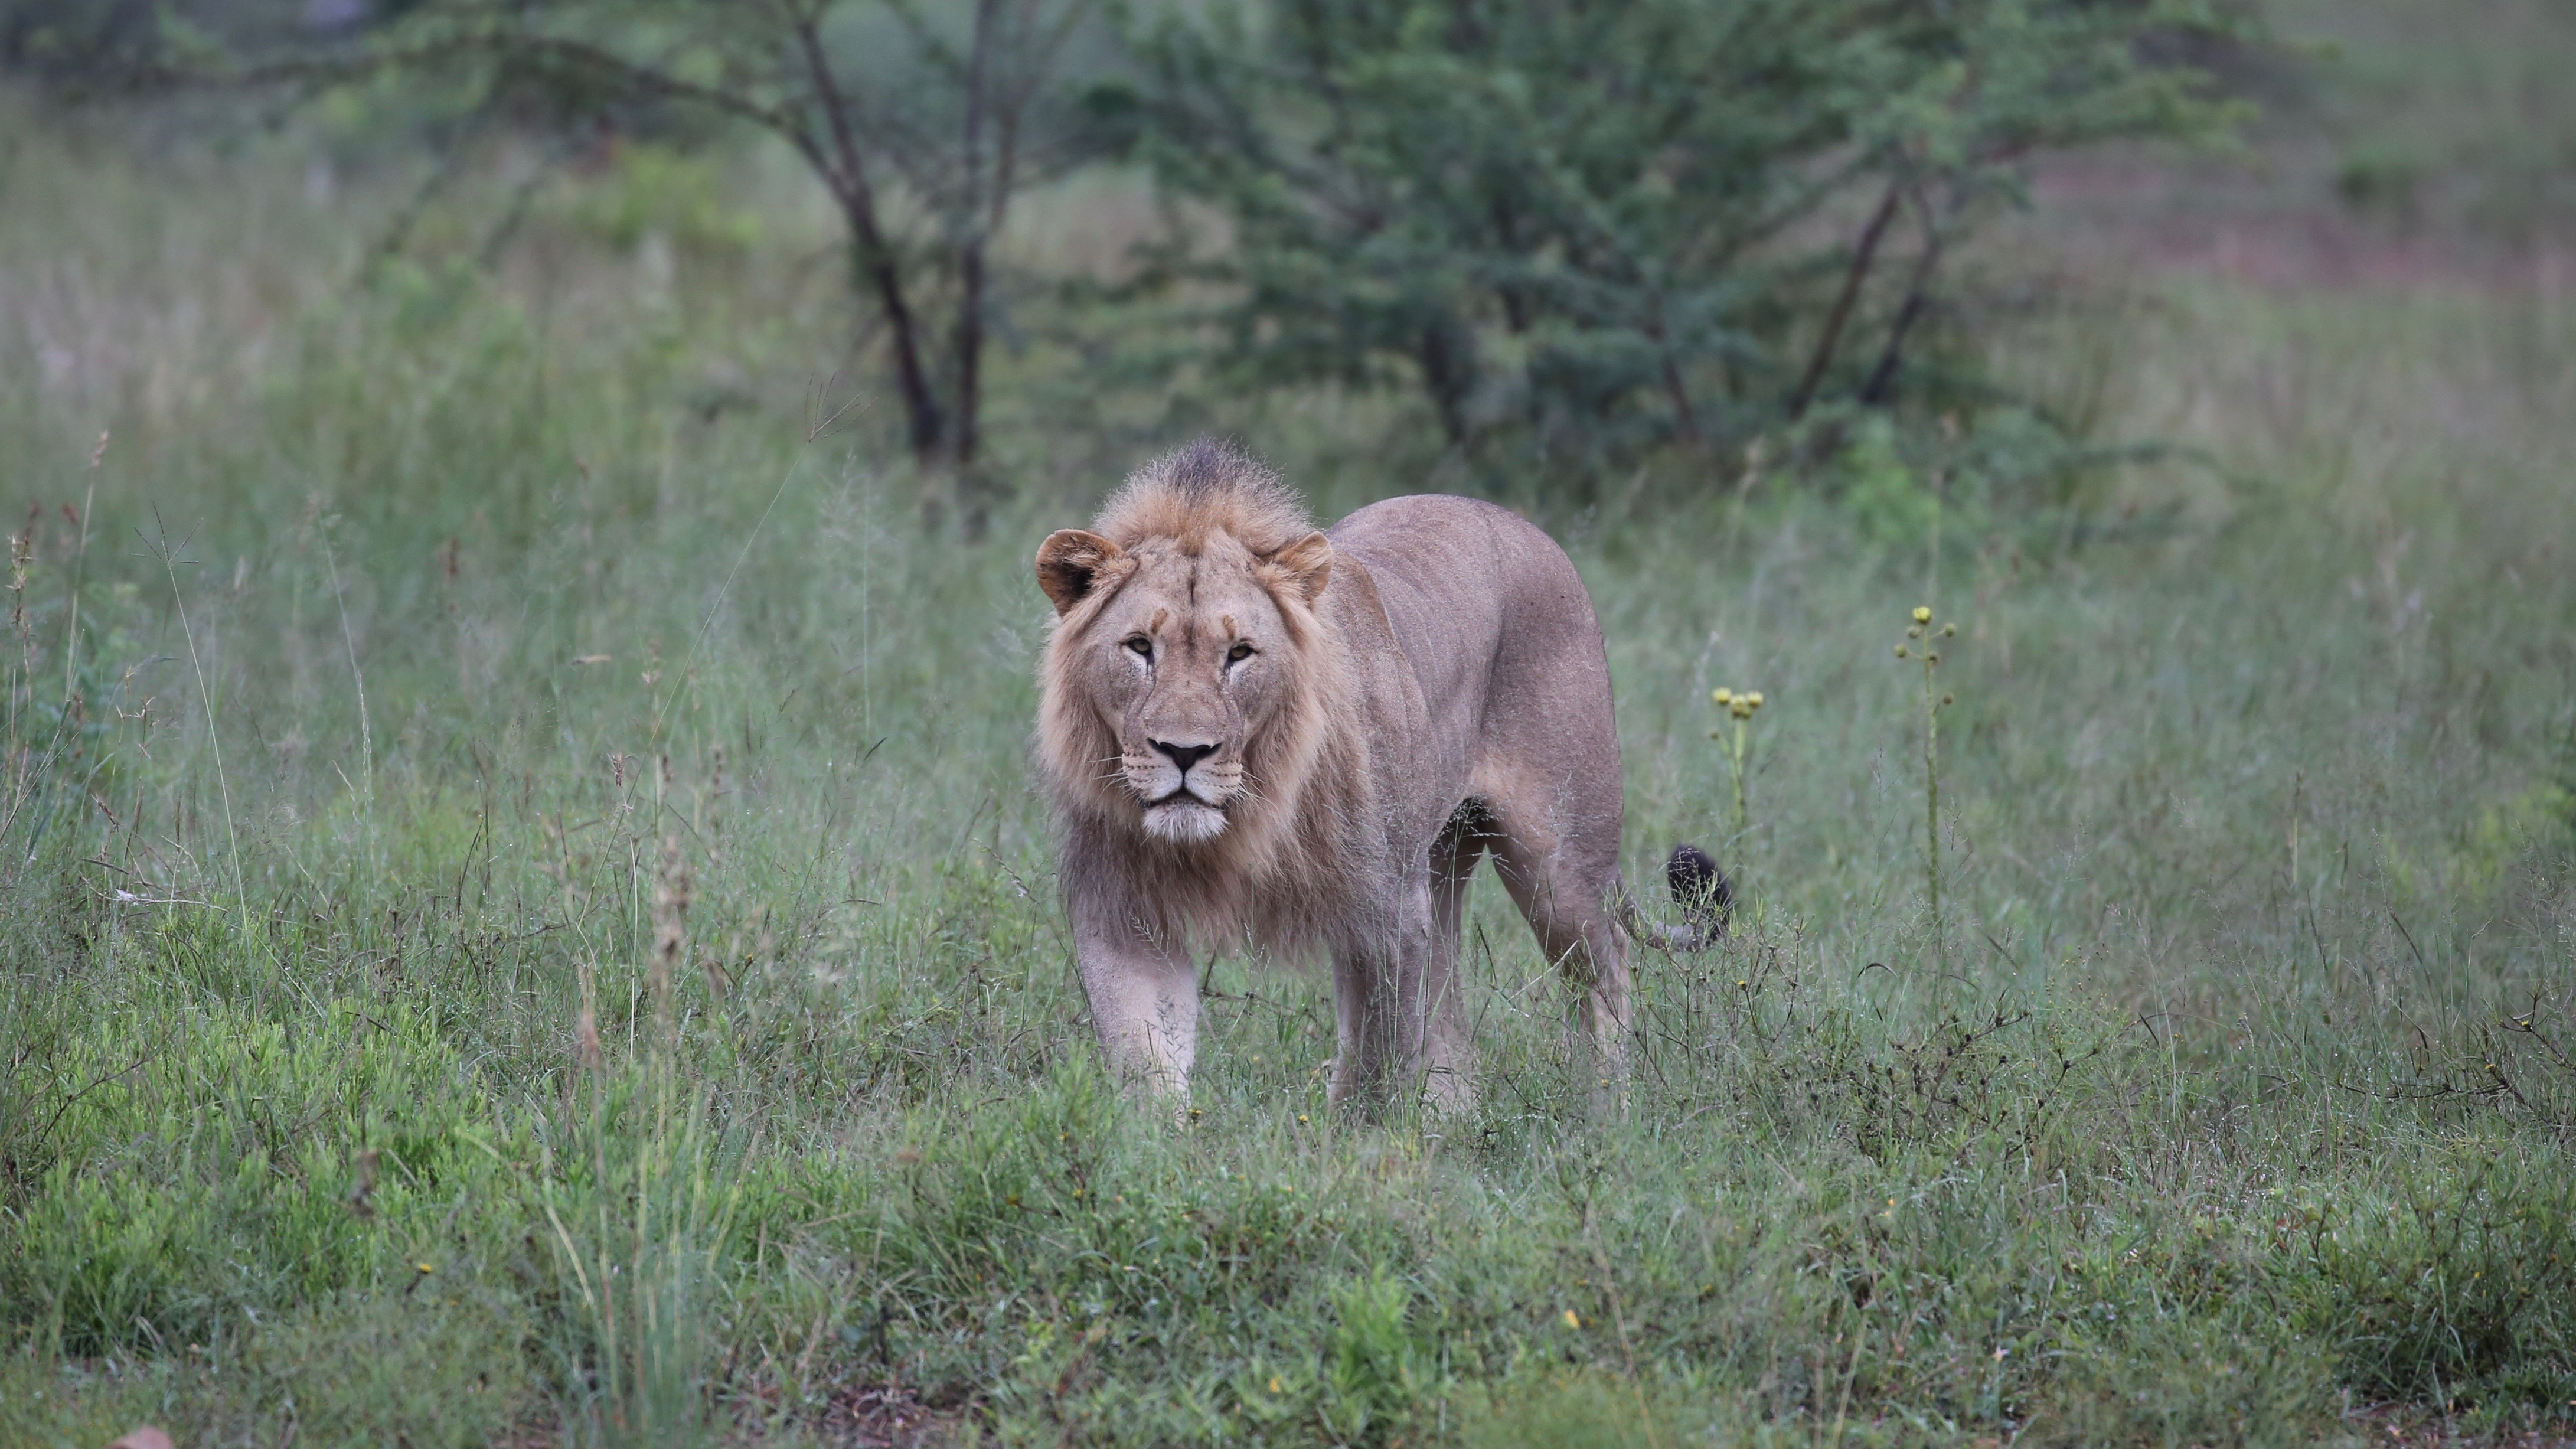 147561 download wallpaper Animals, Lion, Big Cat, Predator, Bush screensavers and pictures for free